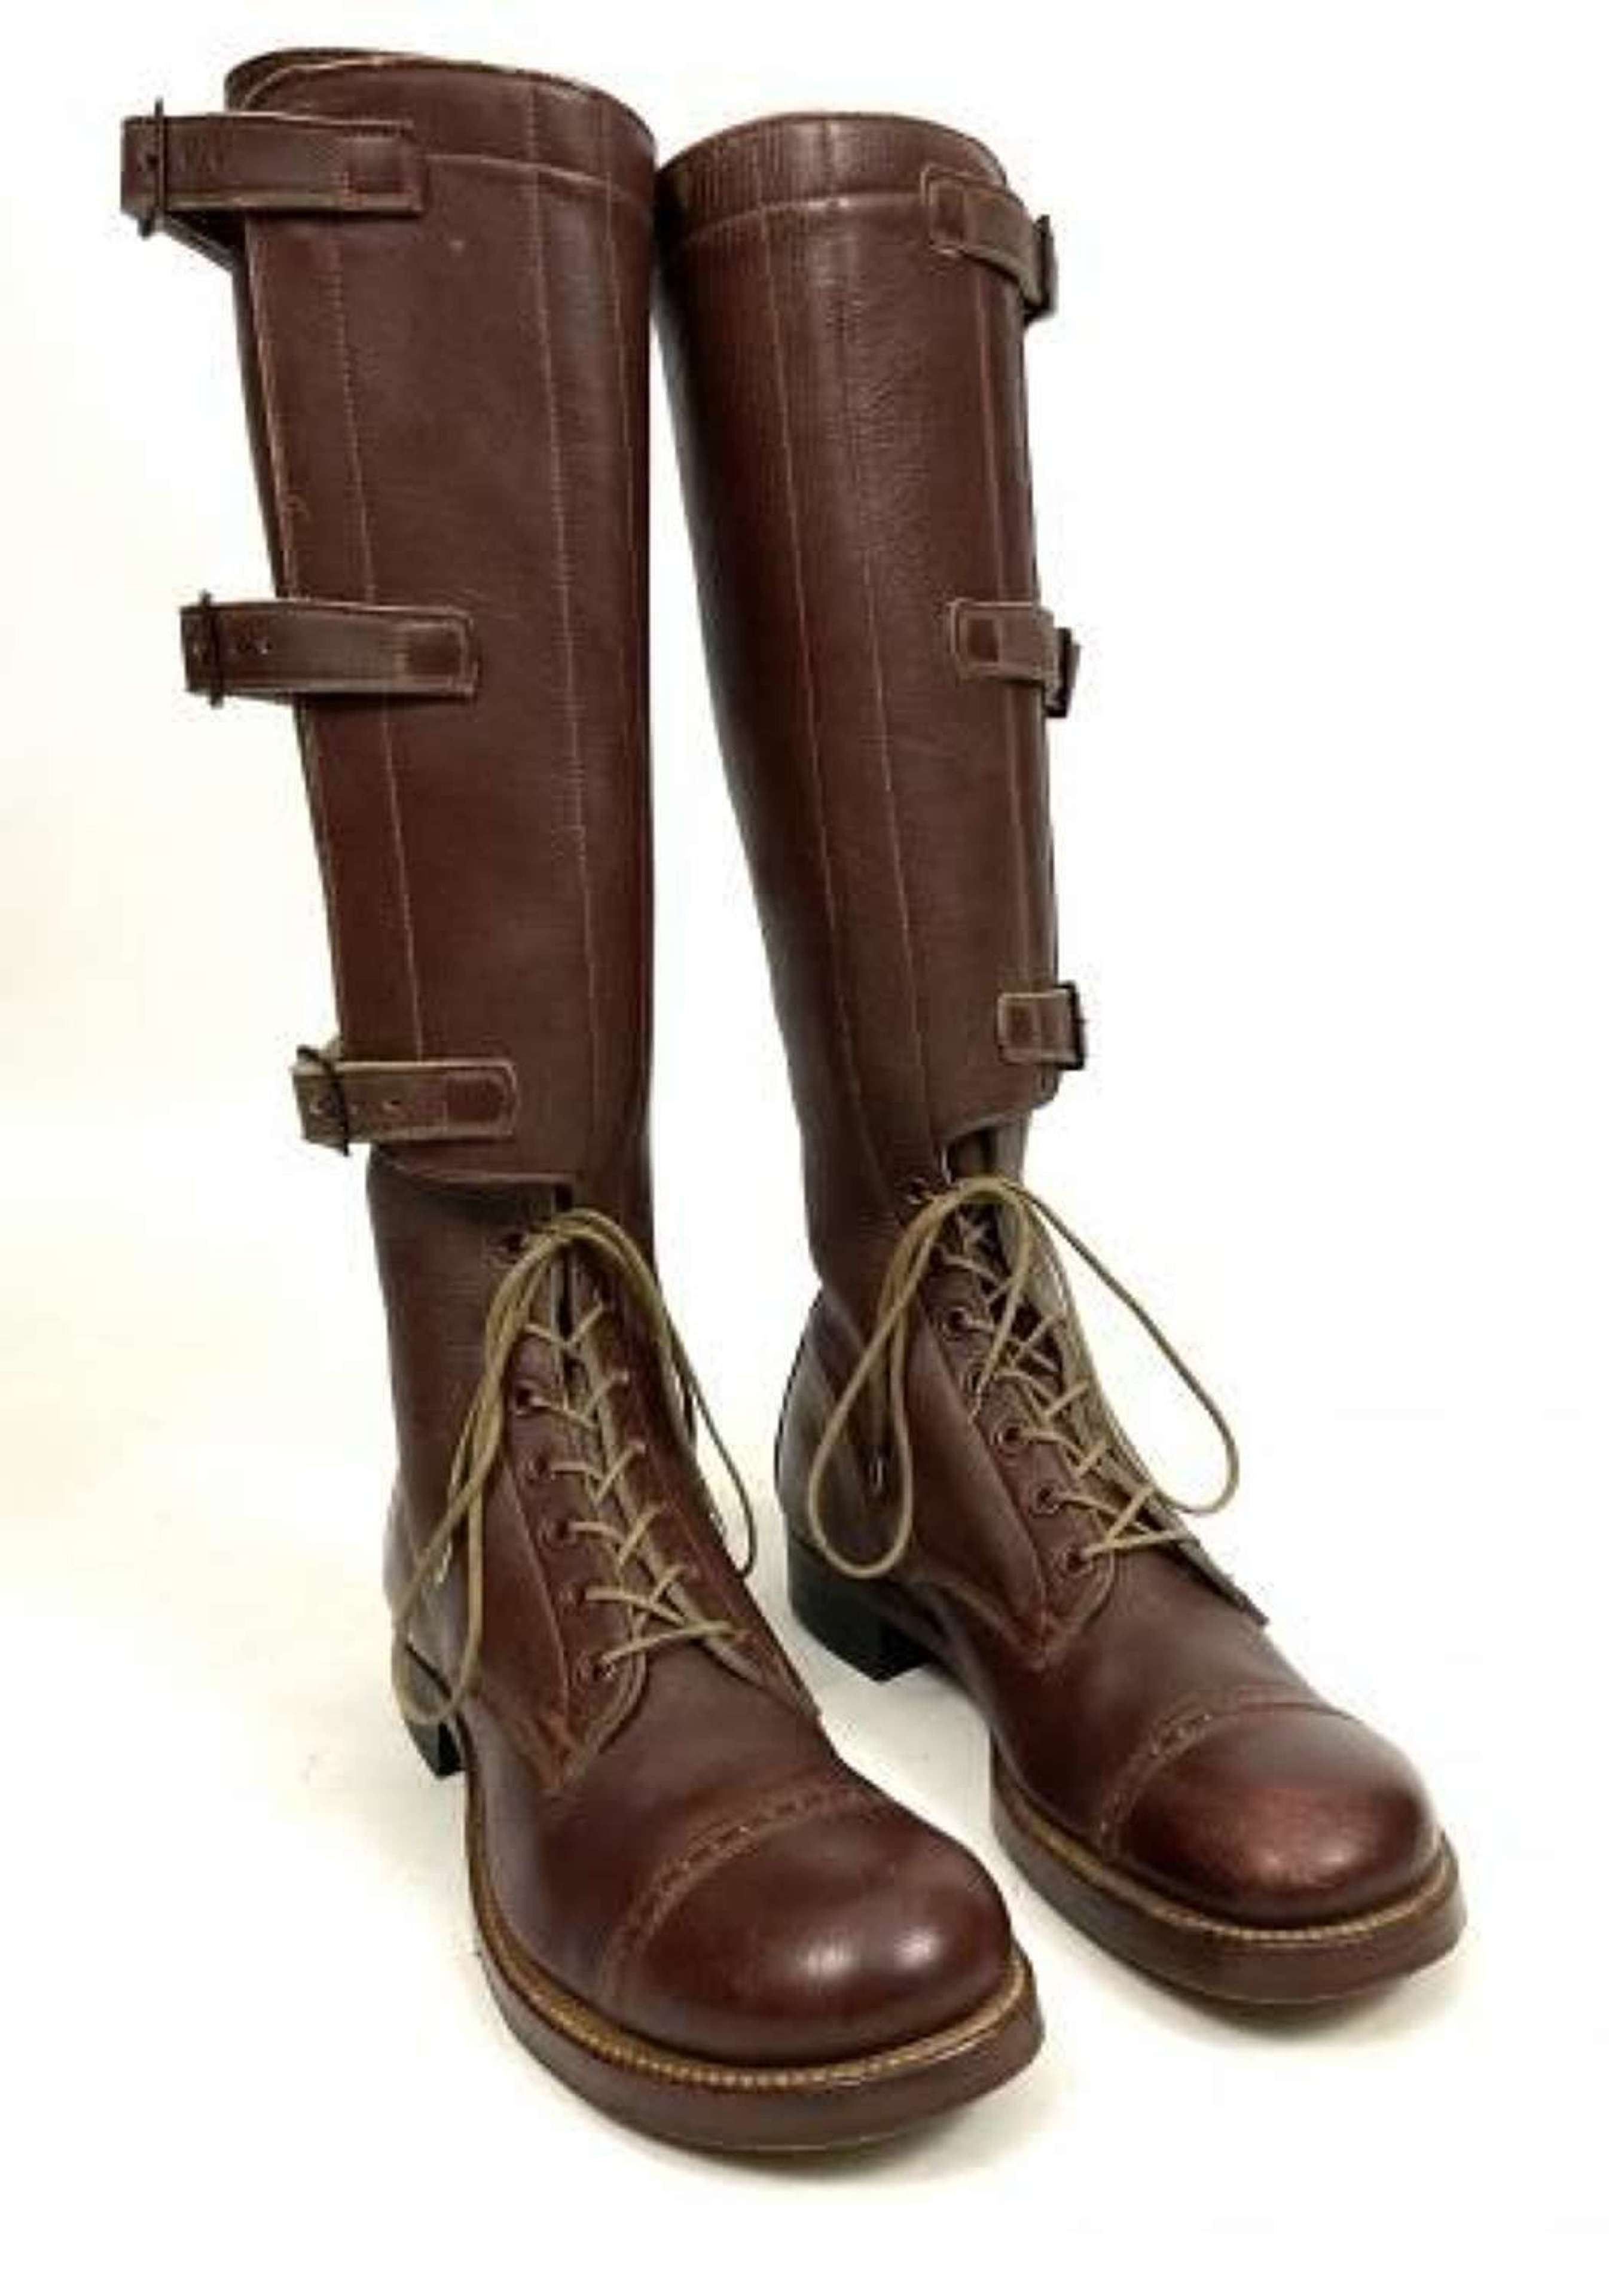 Original 1944 Dated US Army Boots, Field, Leather, Legging Top